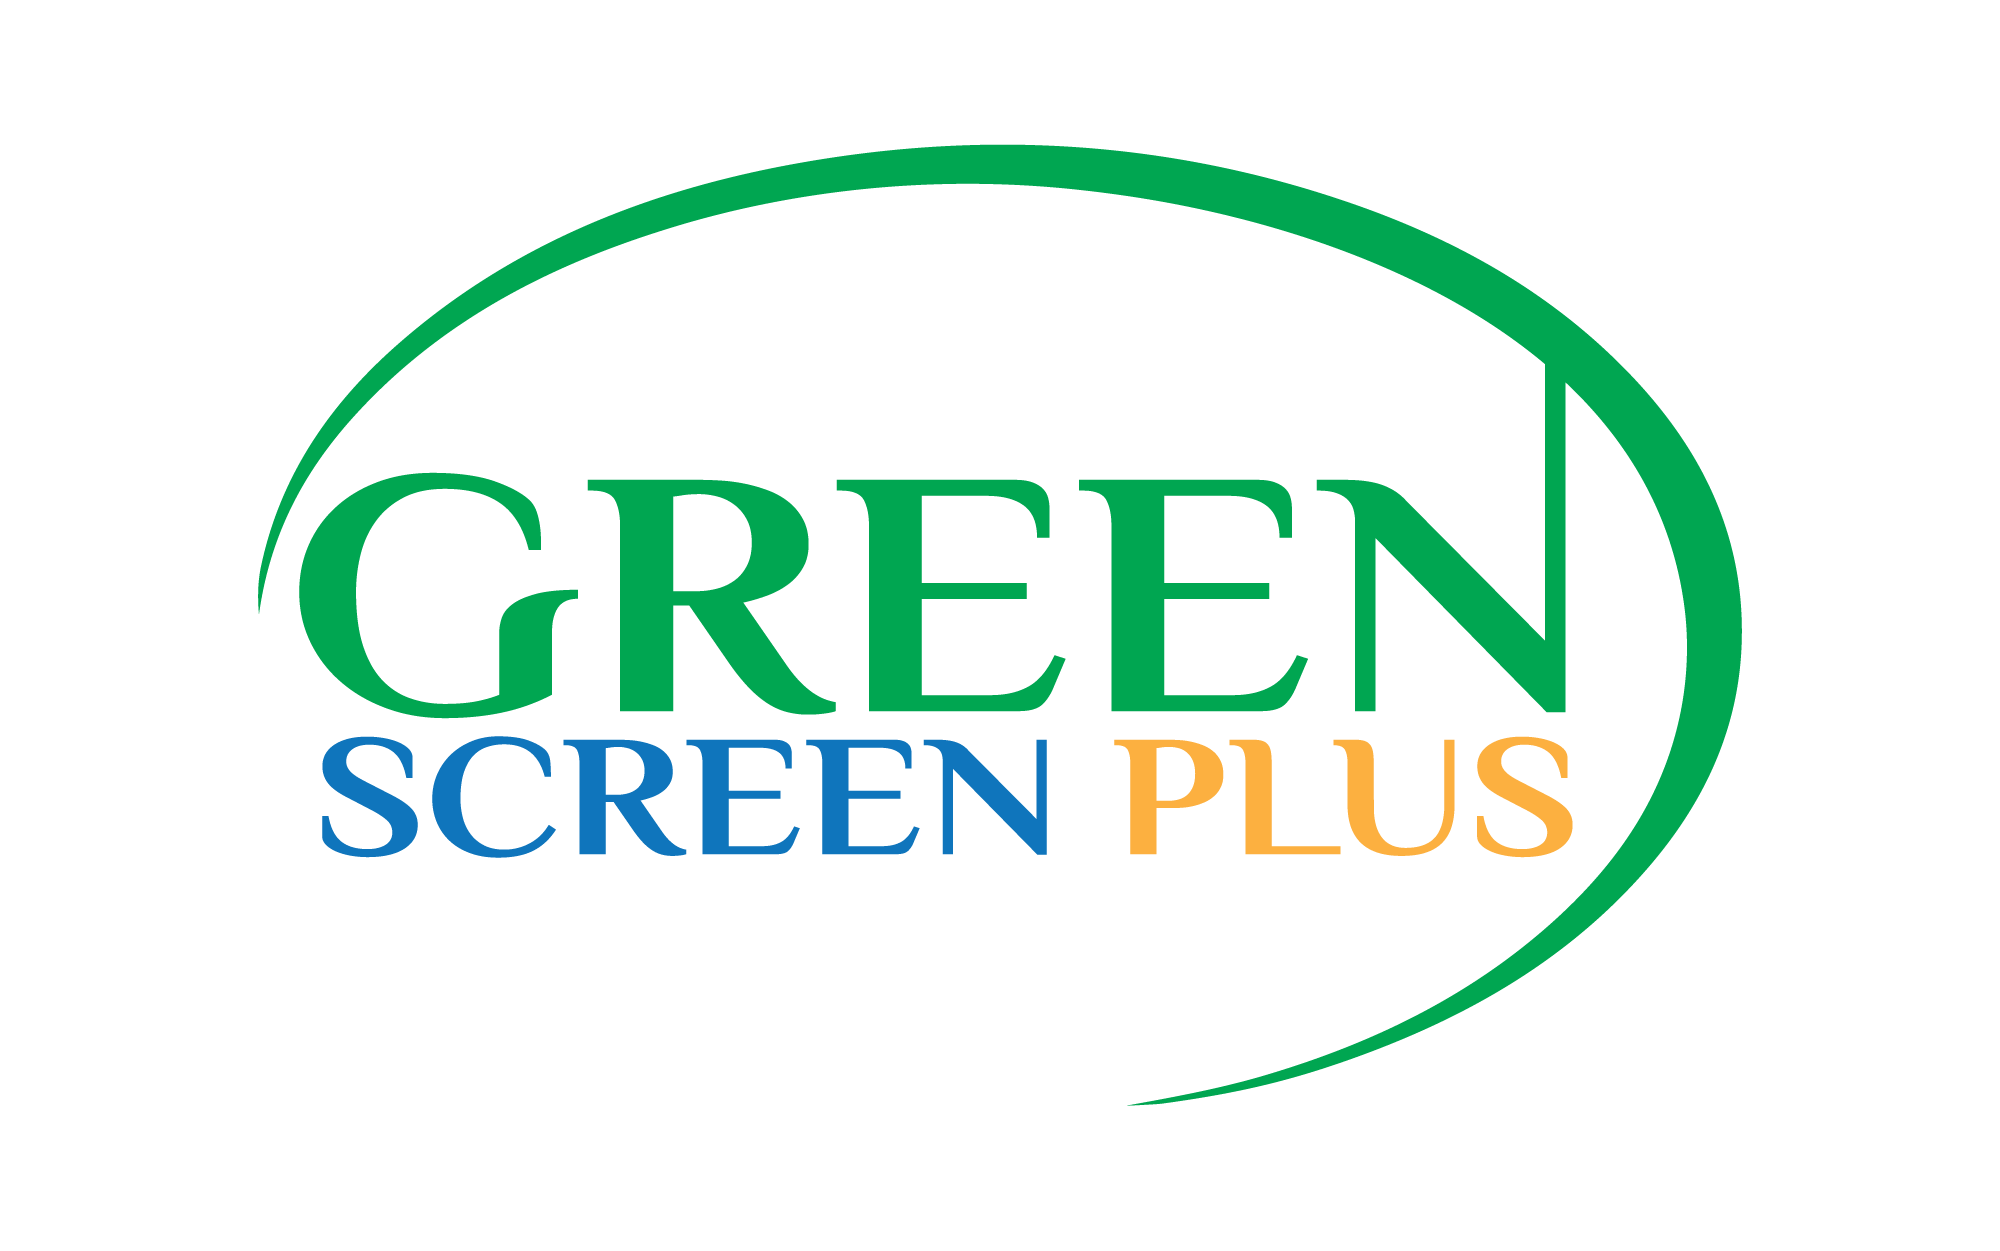 GreenScreenPlus Launches New High-Quality Green Screens For Remote Learning, Home Office, and Homeschooling 1